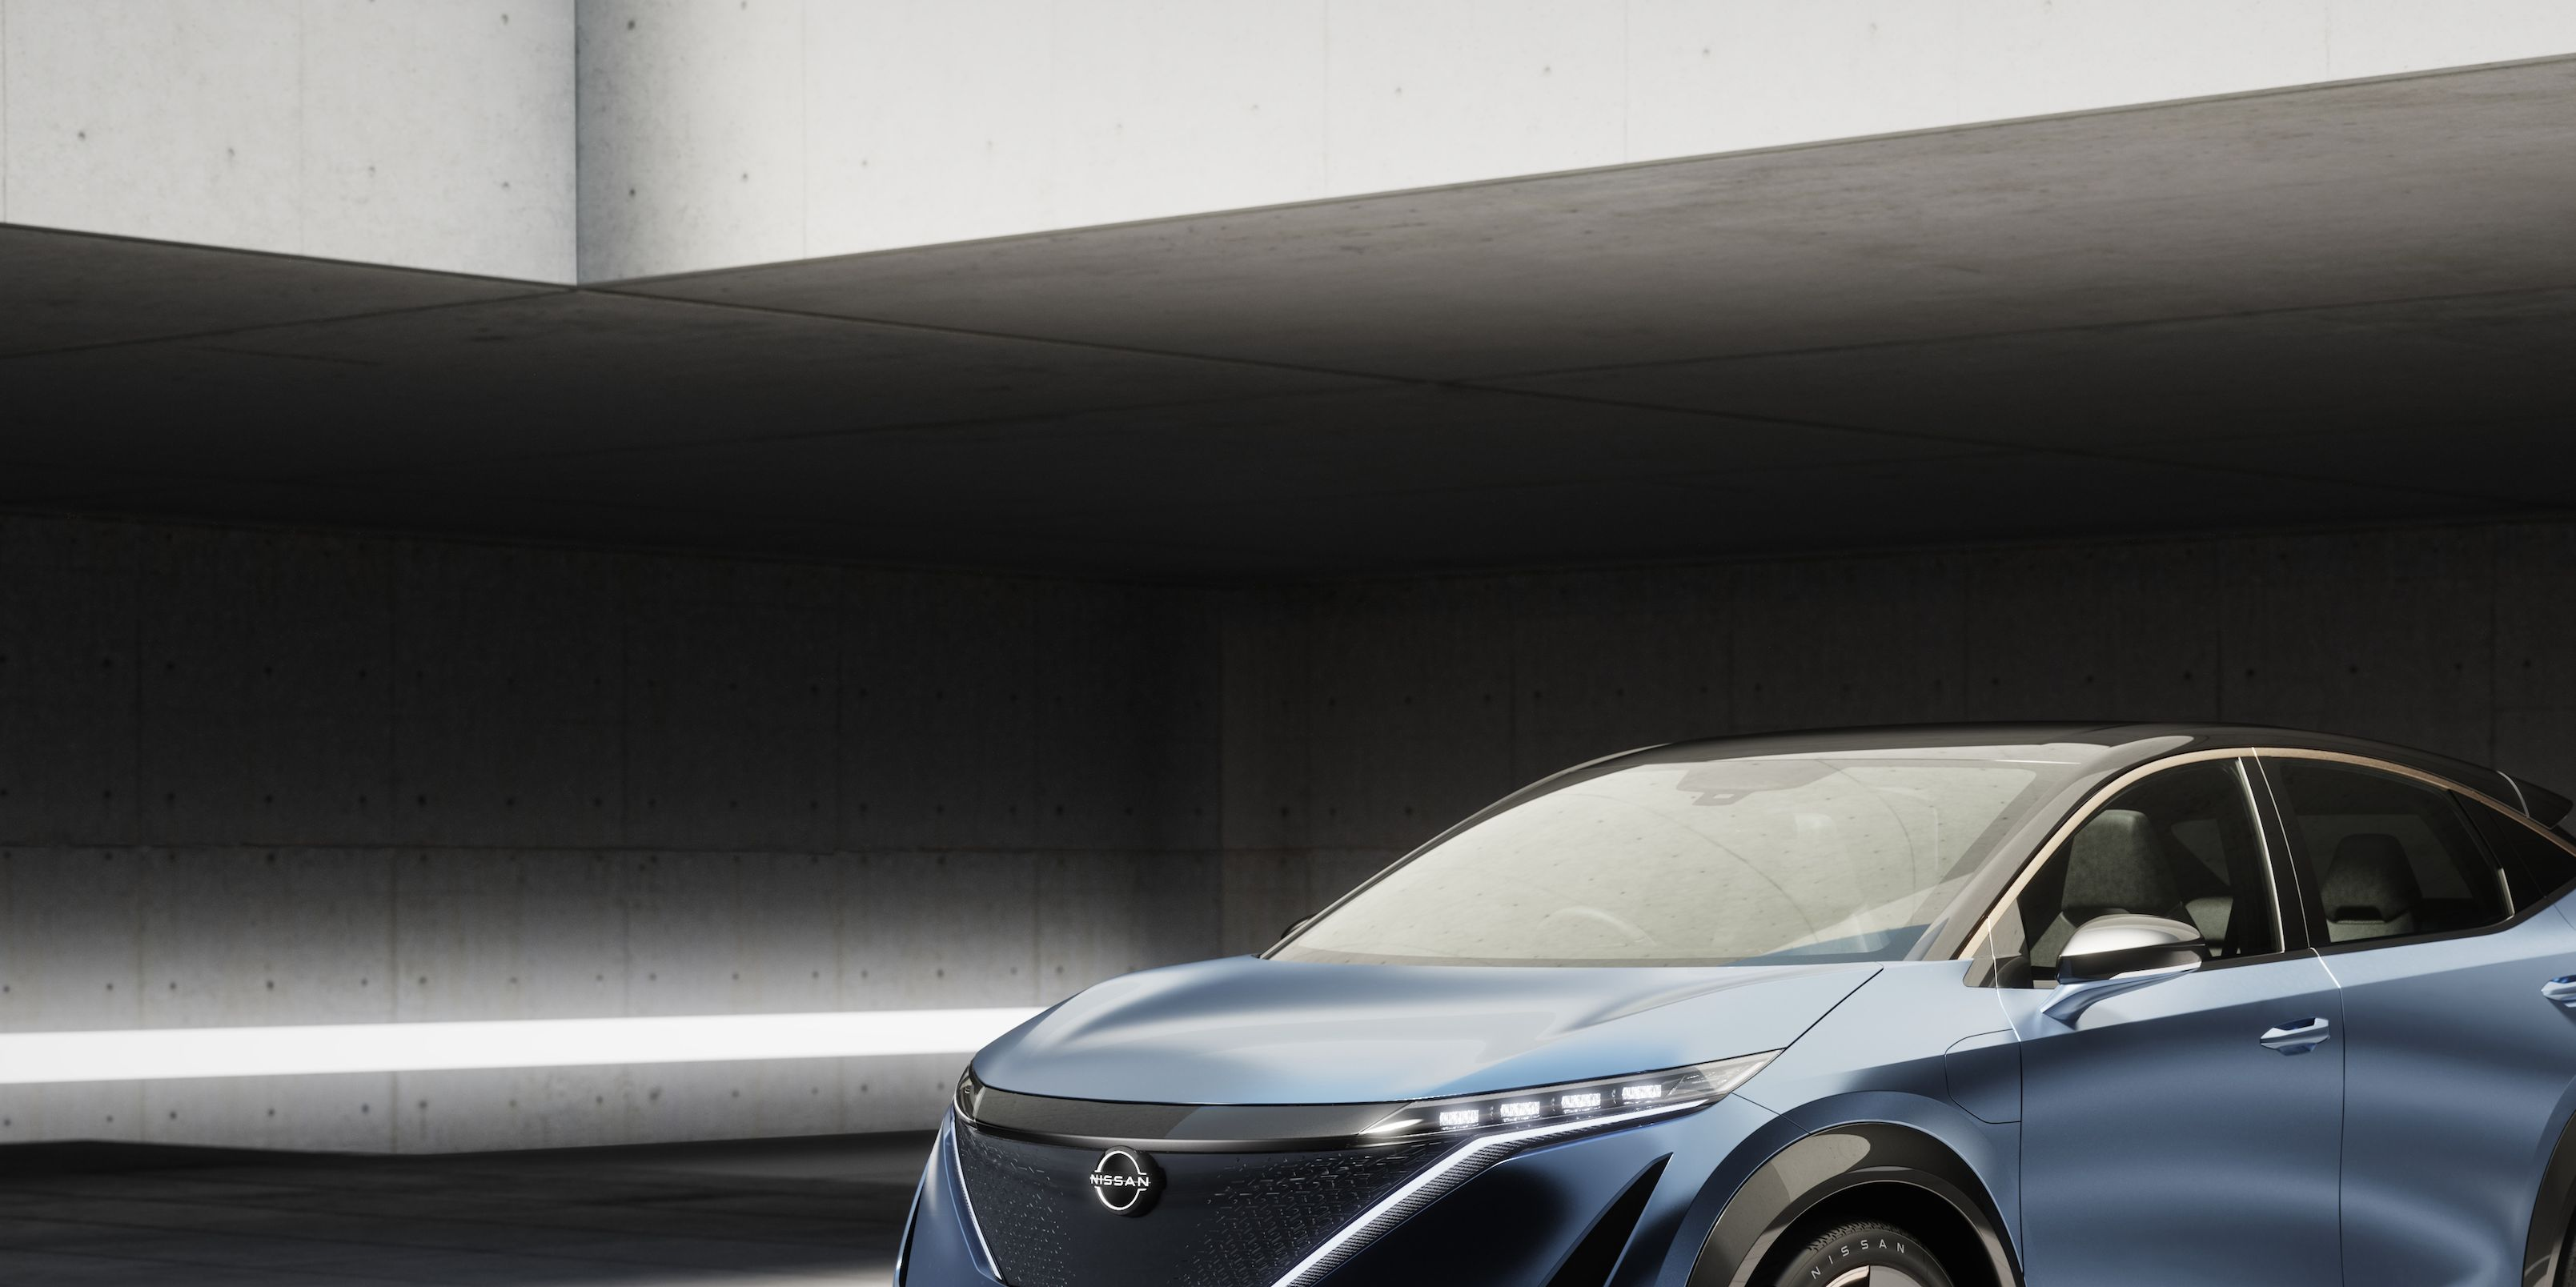 Nissan Ariya EV Concept Has Shield for Its Sensors, Not a Grille